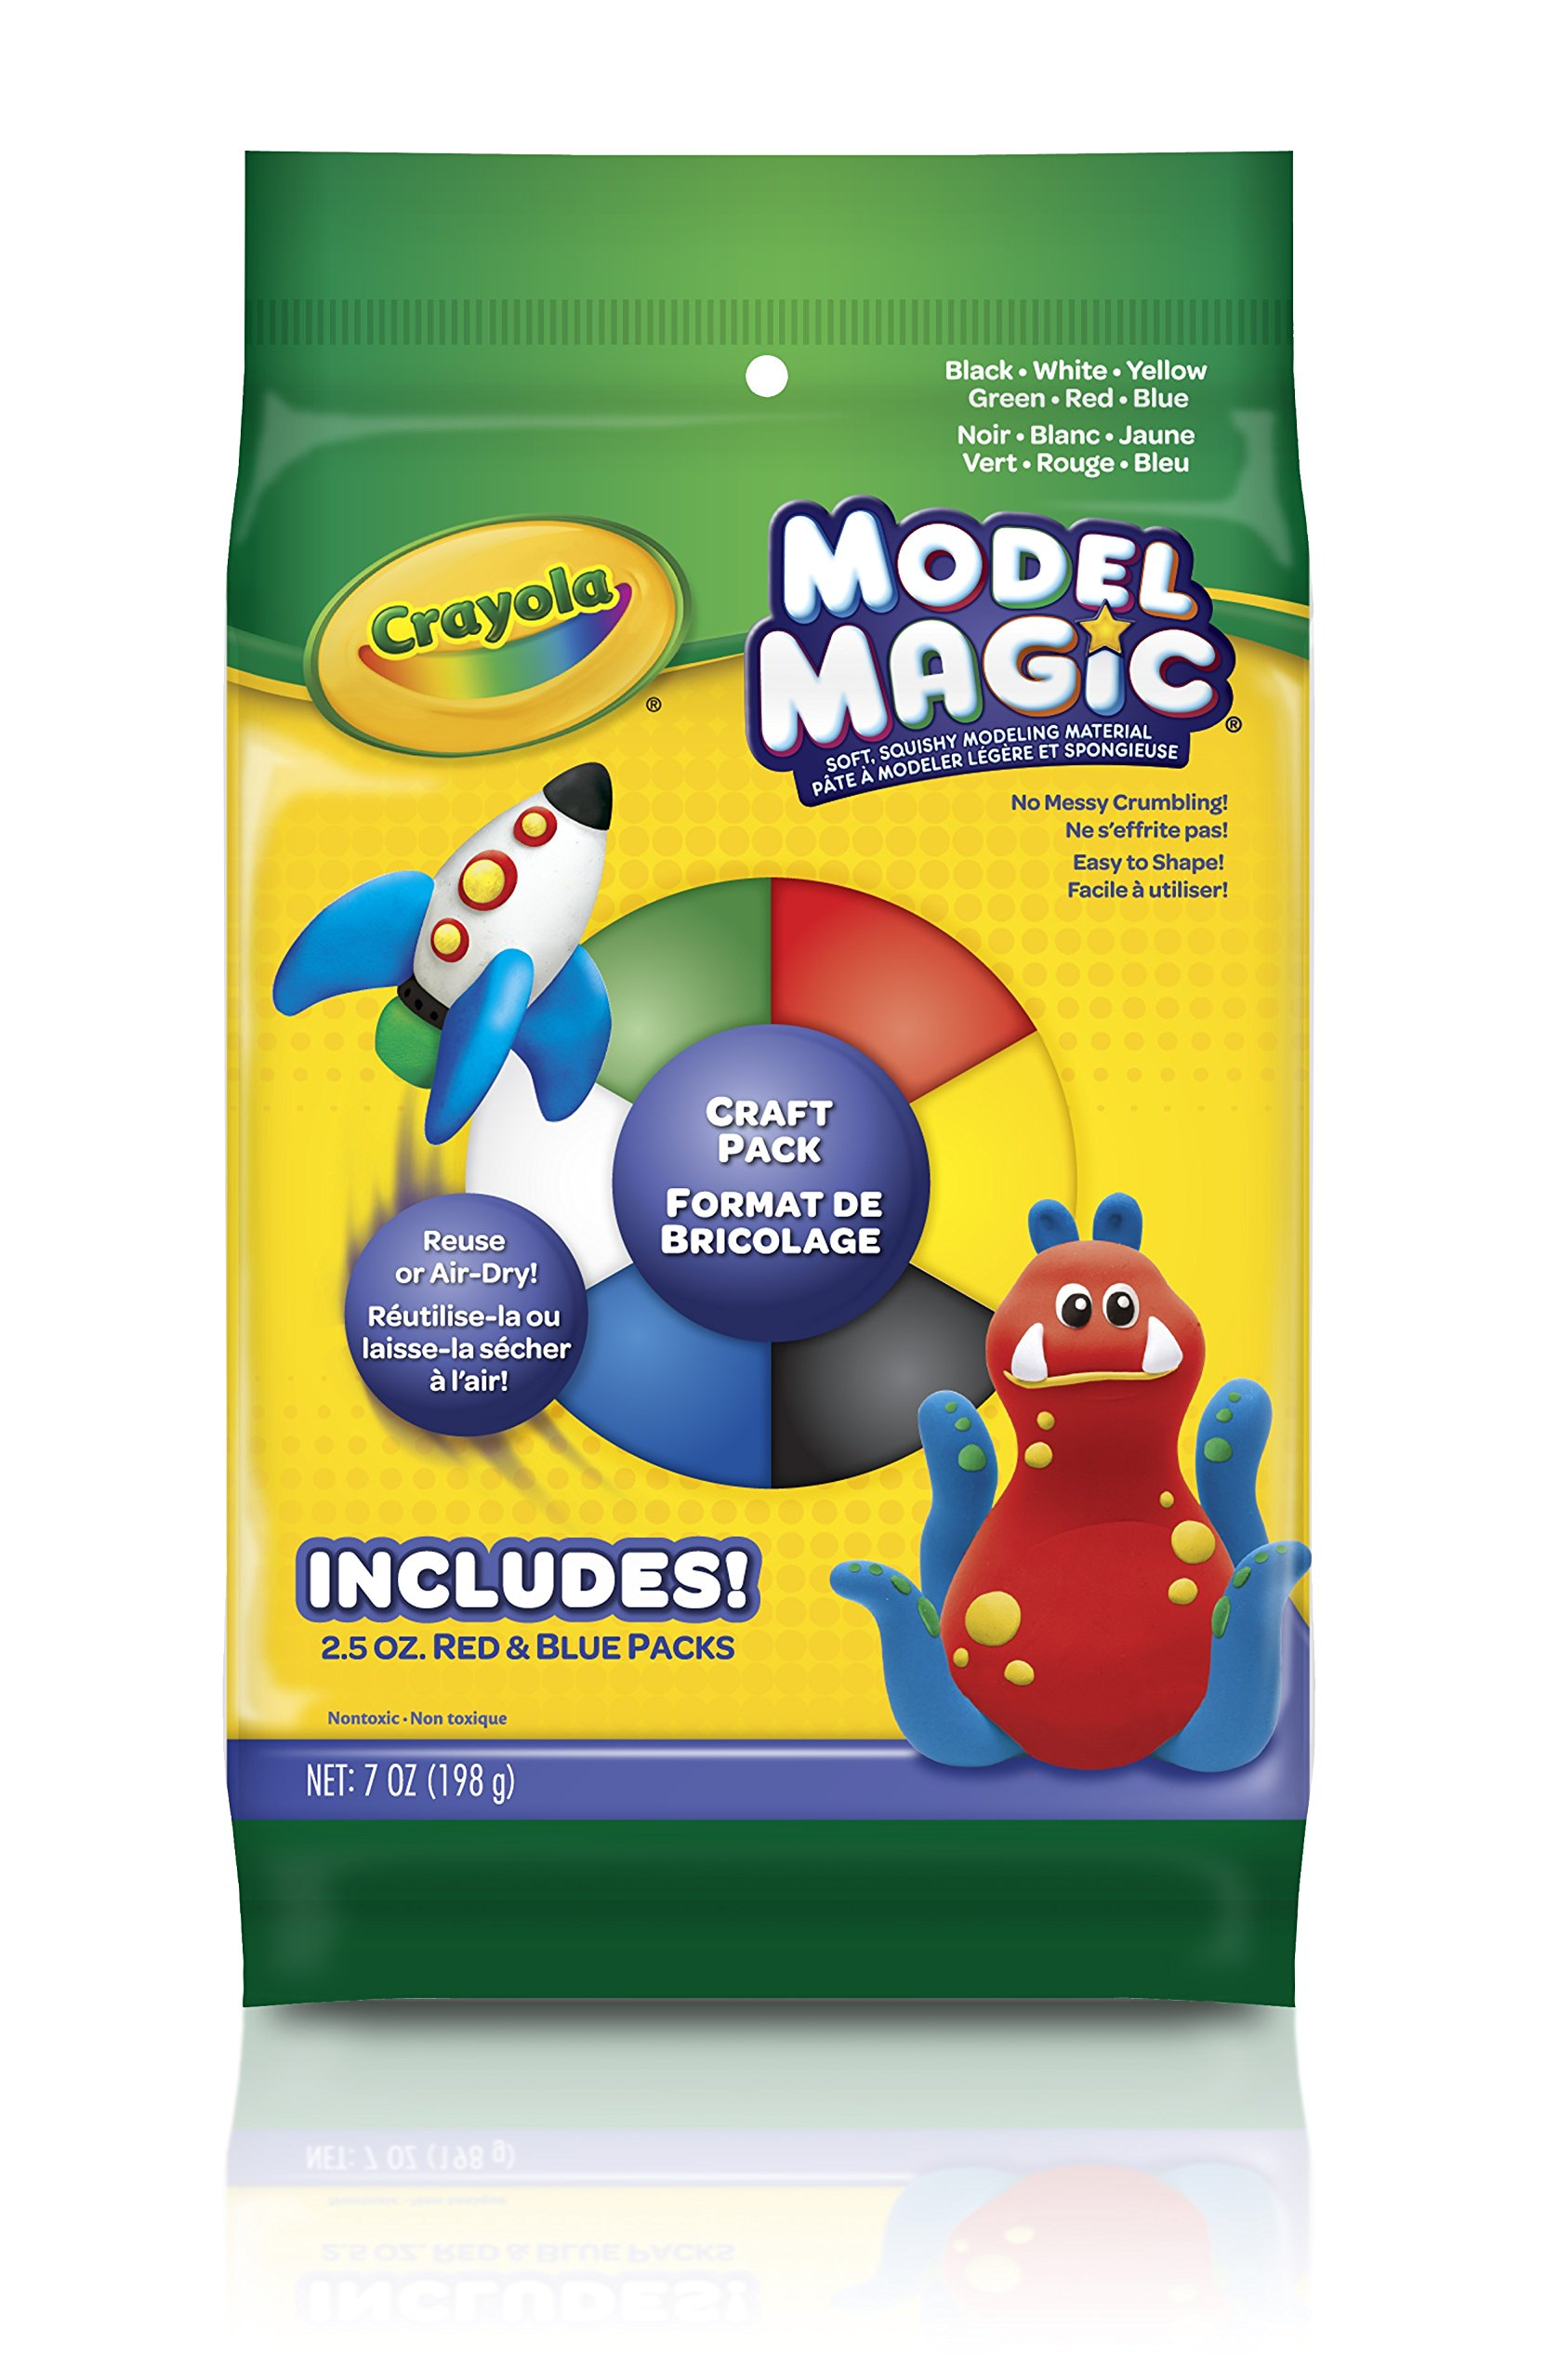 Soft Crayola Model Magic Lightweight Modeling Material For Kids 4 /& Up 4 Count Bucket Air Dries Smooth Easy to Paint and Decorate 8 Ounce Packs Primary Colors Red//Yellow//Blue//White No-Mess